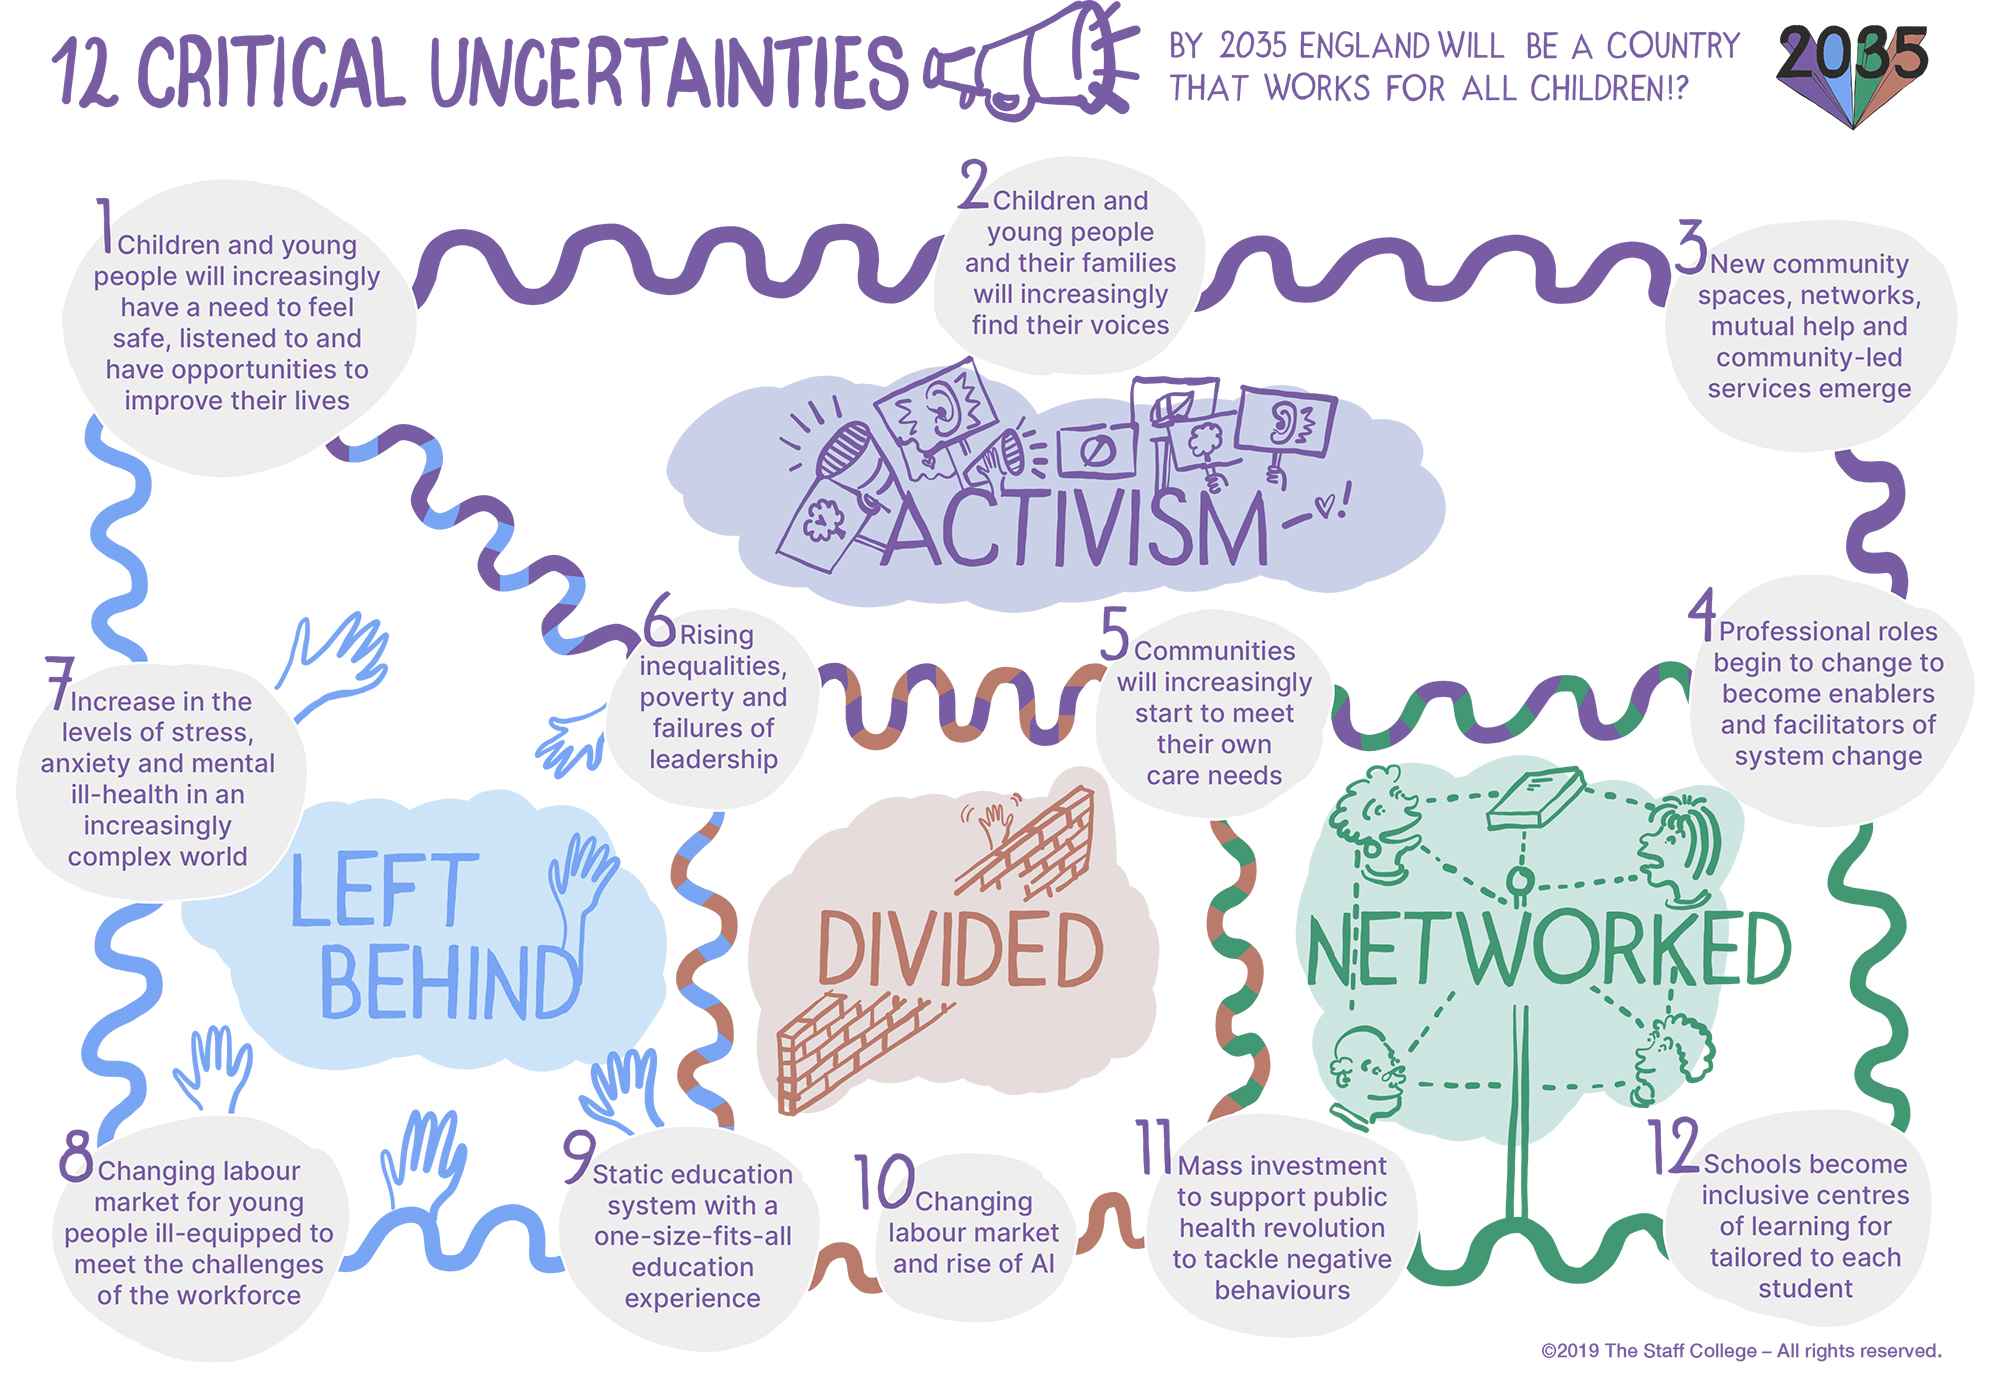 12 Critical uncertainties for Project 2035 | Design and illustration by Ida Henrich